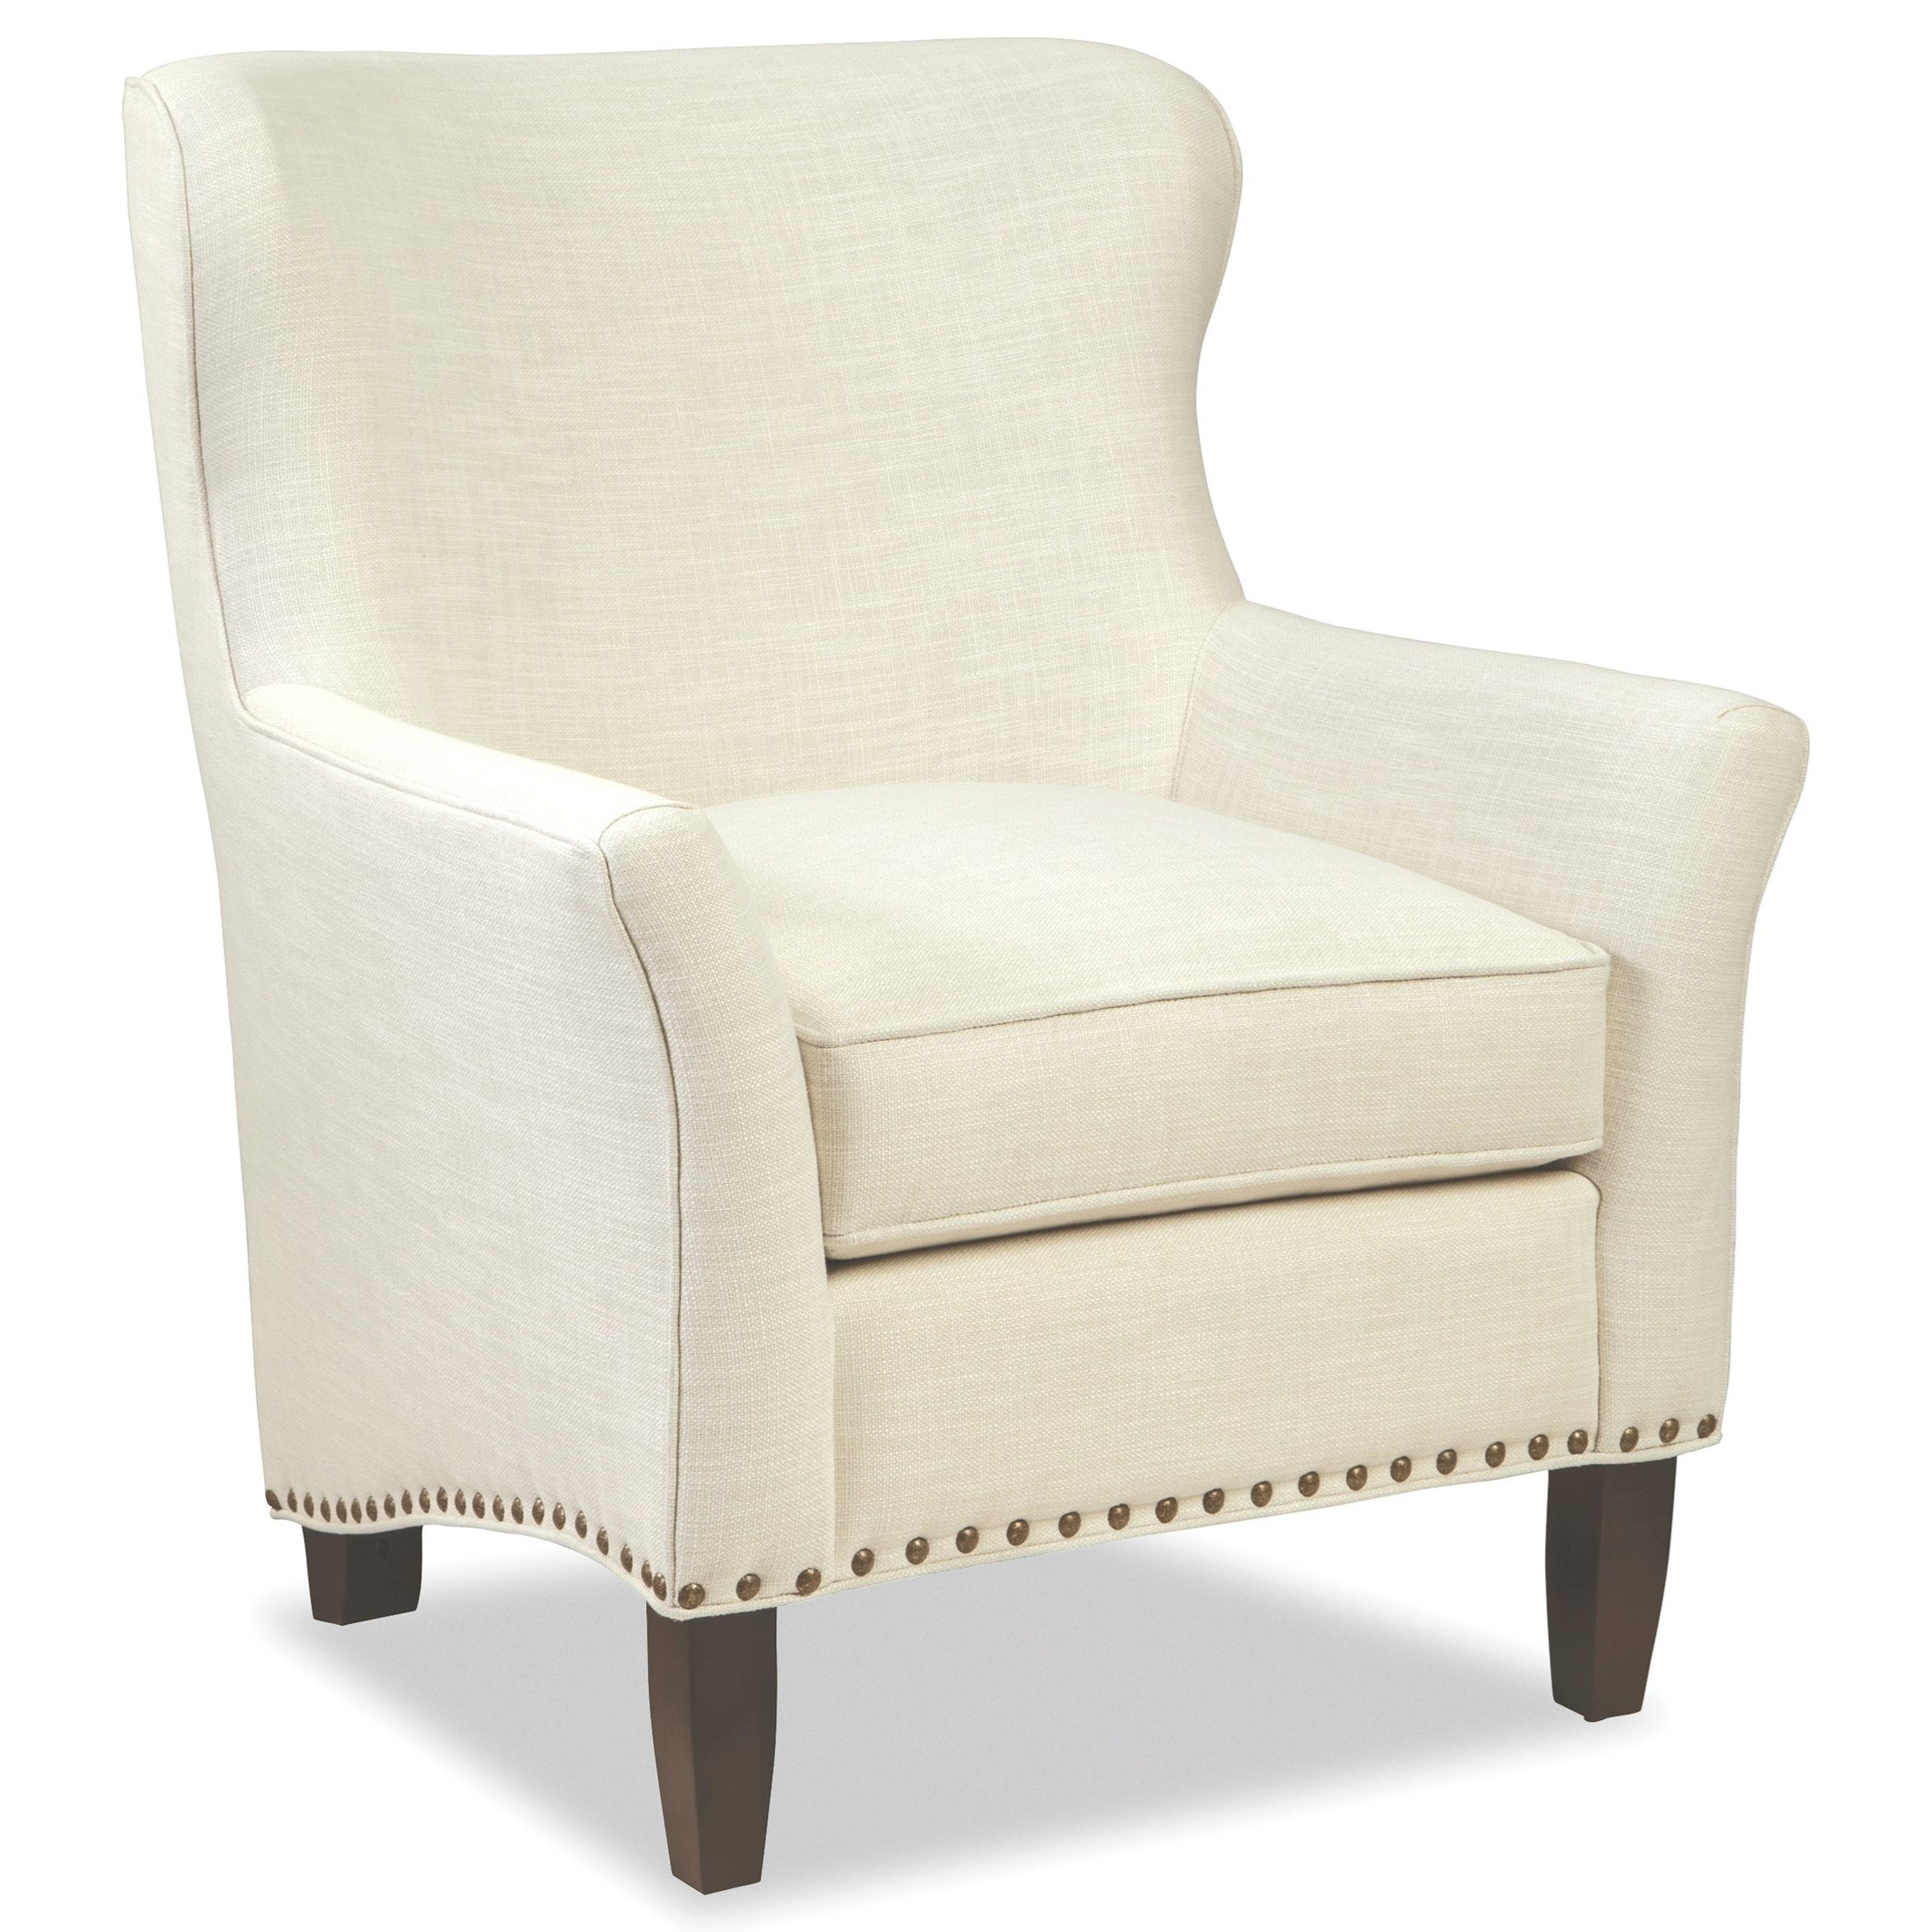 Transitional Accent Chair with Nailheads